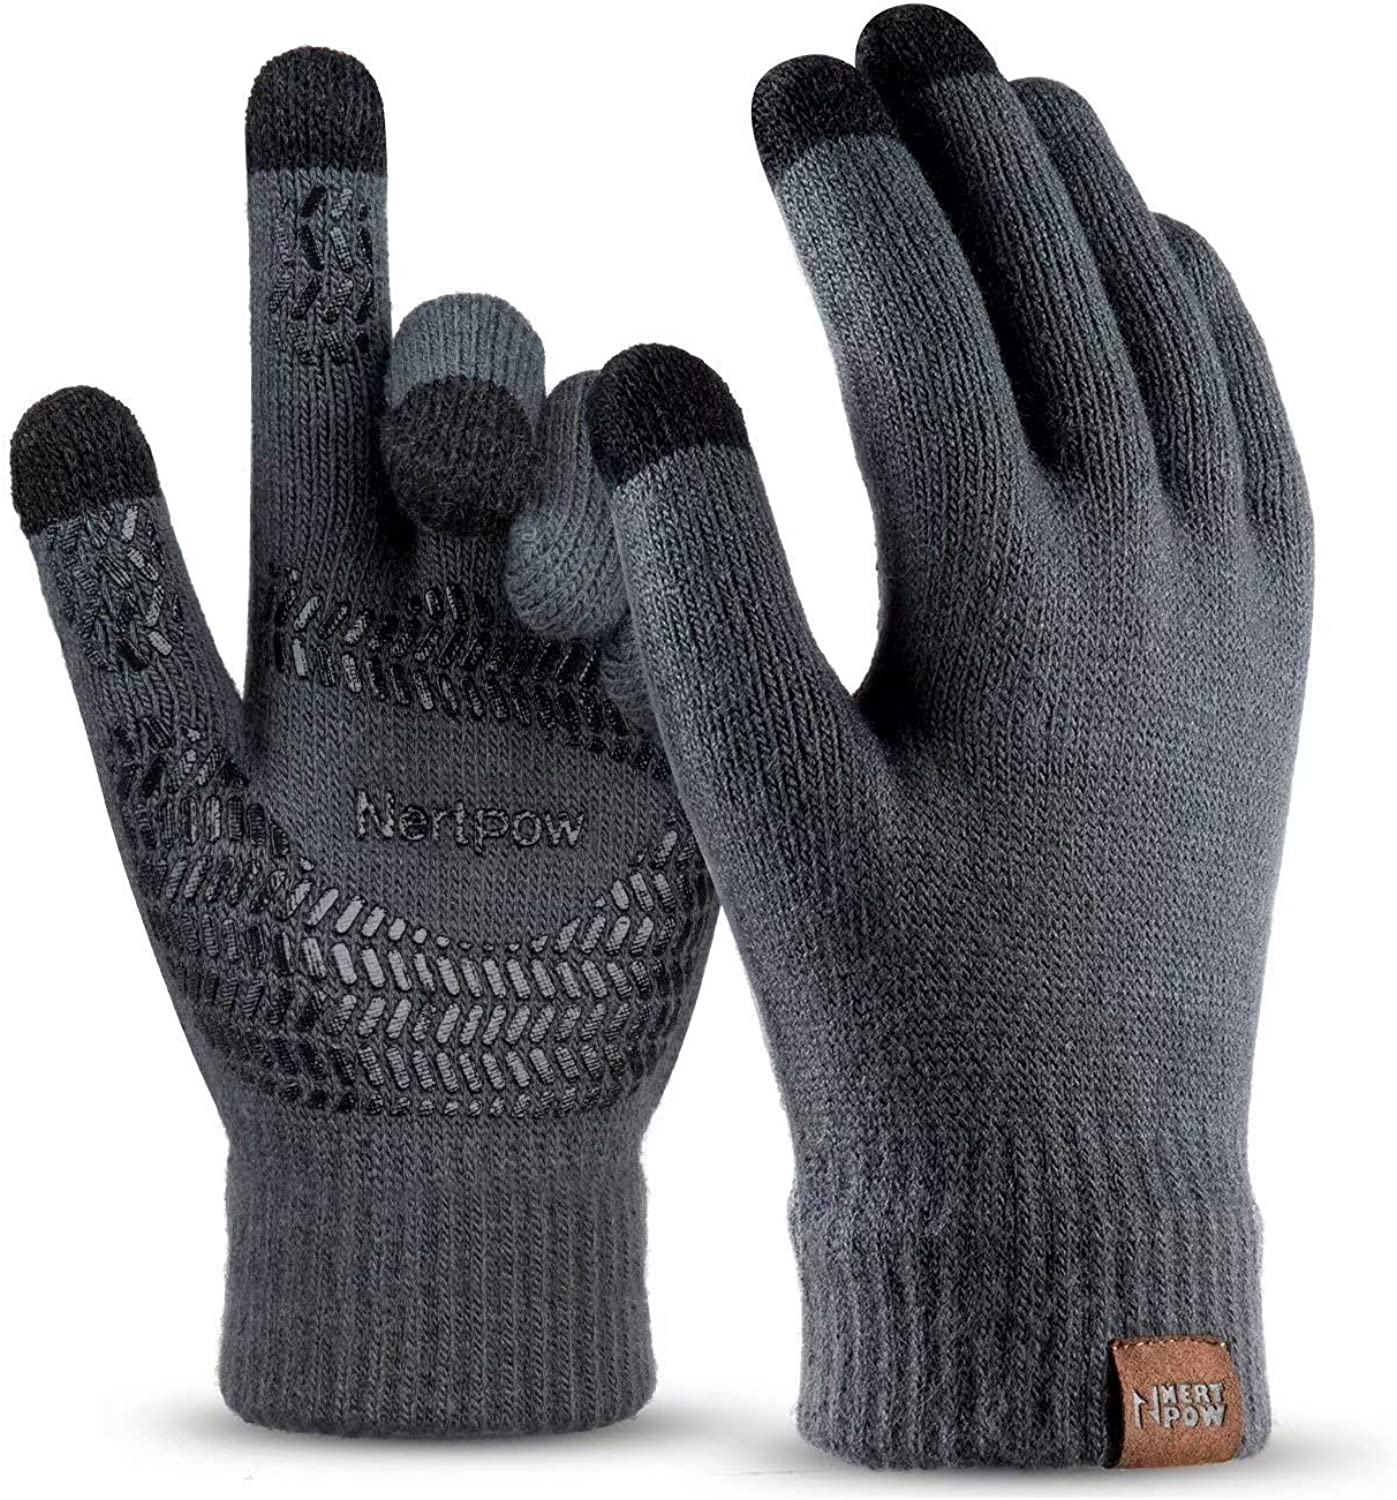 Winter Knit Gloves For Men And Women, Touch Screen Texting Soft Warm Thermal Fleece Lining Gloves With Anti-Slip Silicone Gel (Dark Gray-L)